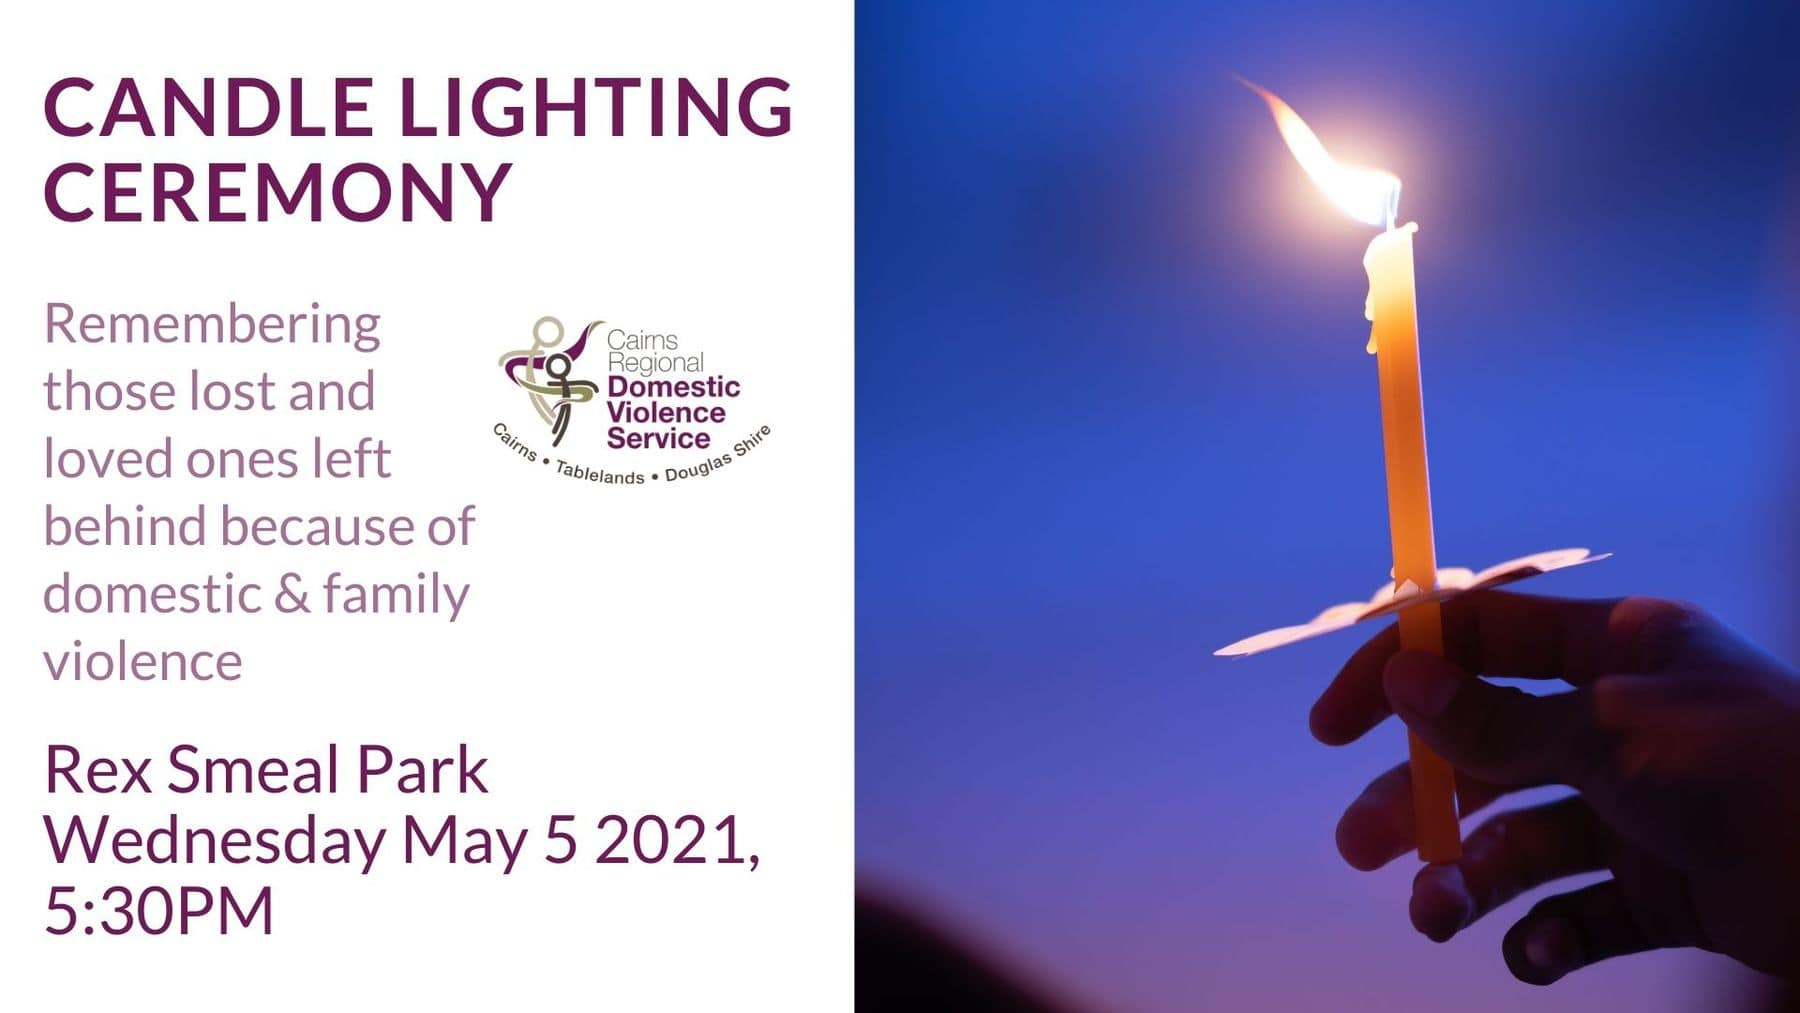 Candle Lighting Ceremony for Family and Domestic Violence